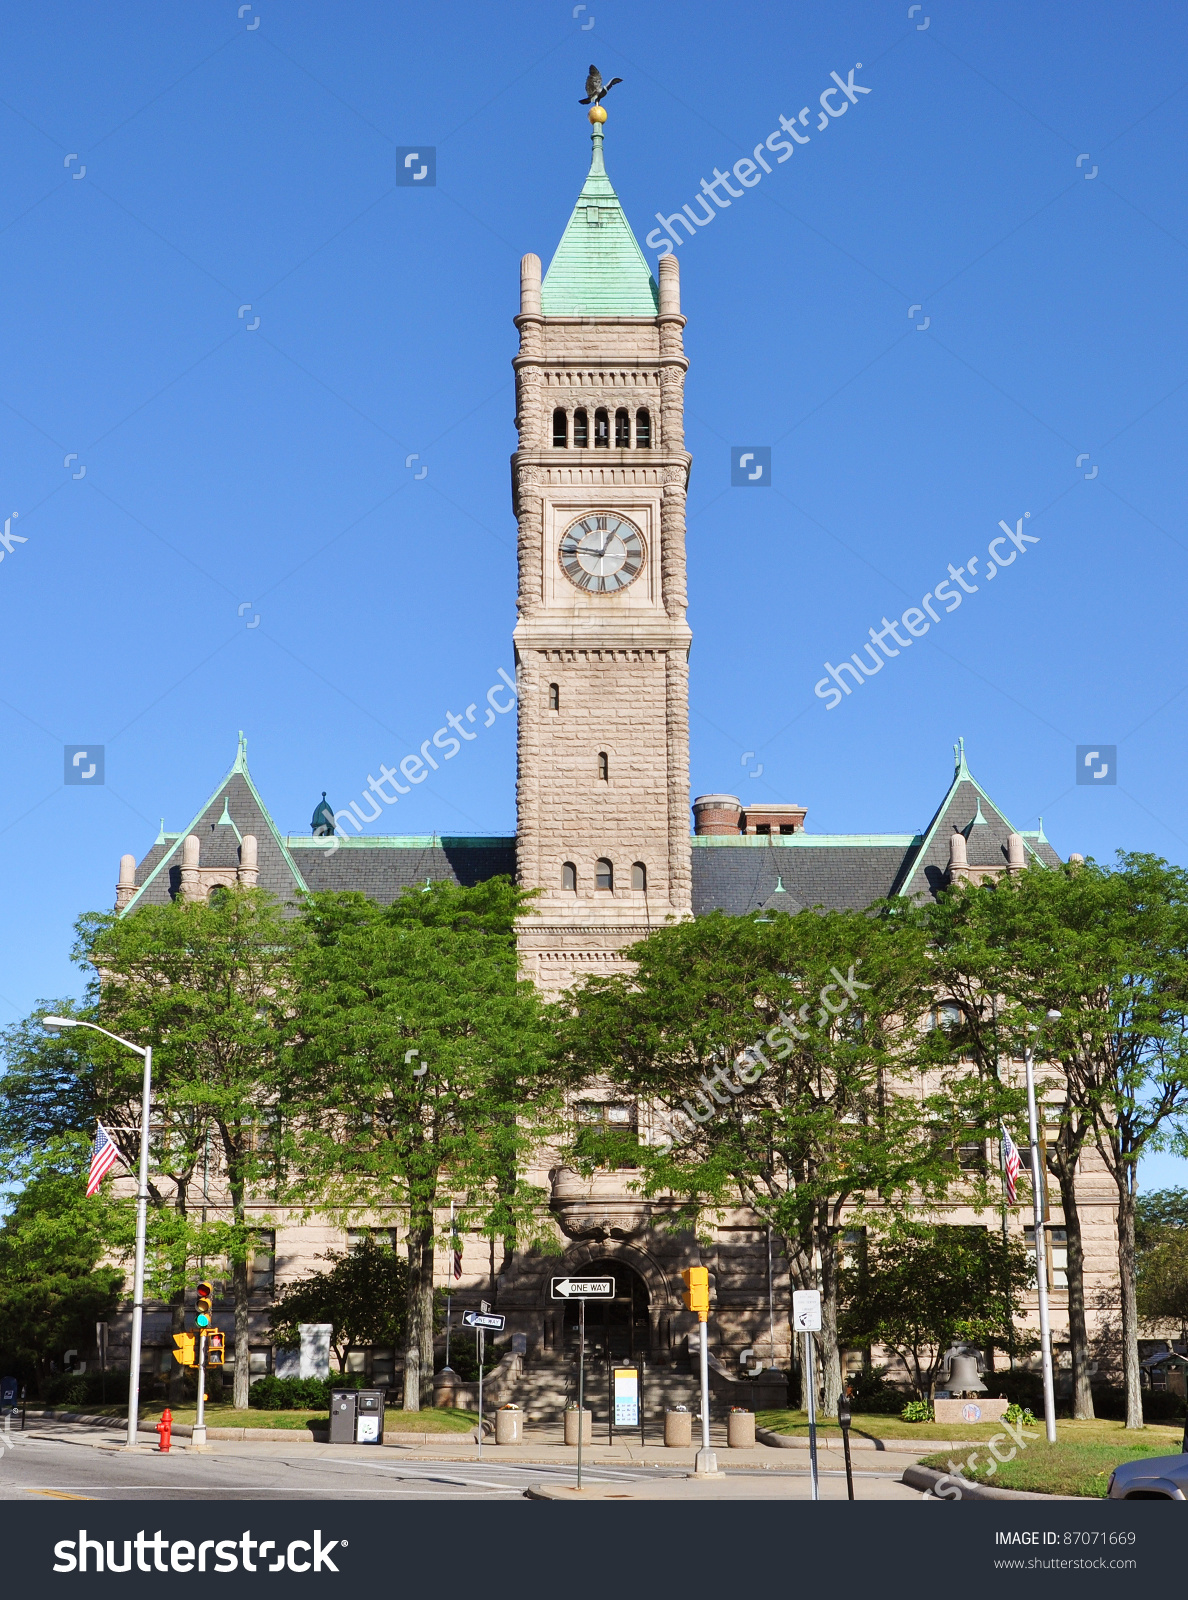 Lowell City Hall Romanesque Revival Style Stock Photo 87071669.